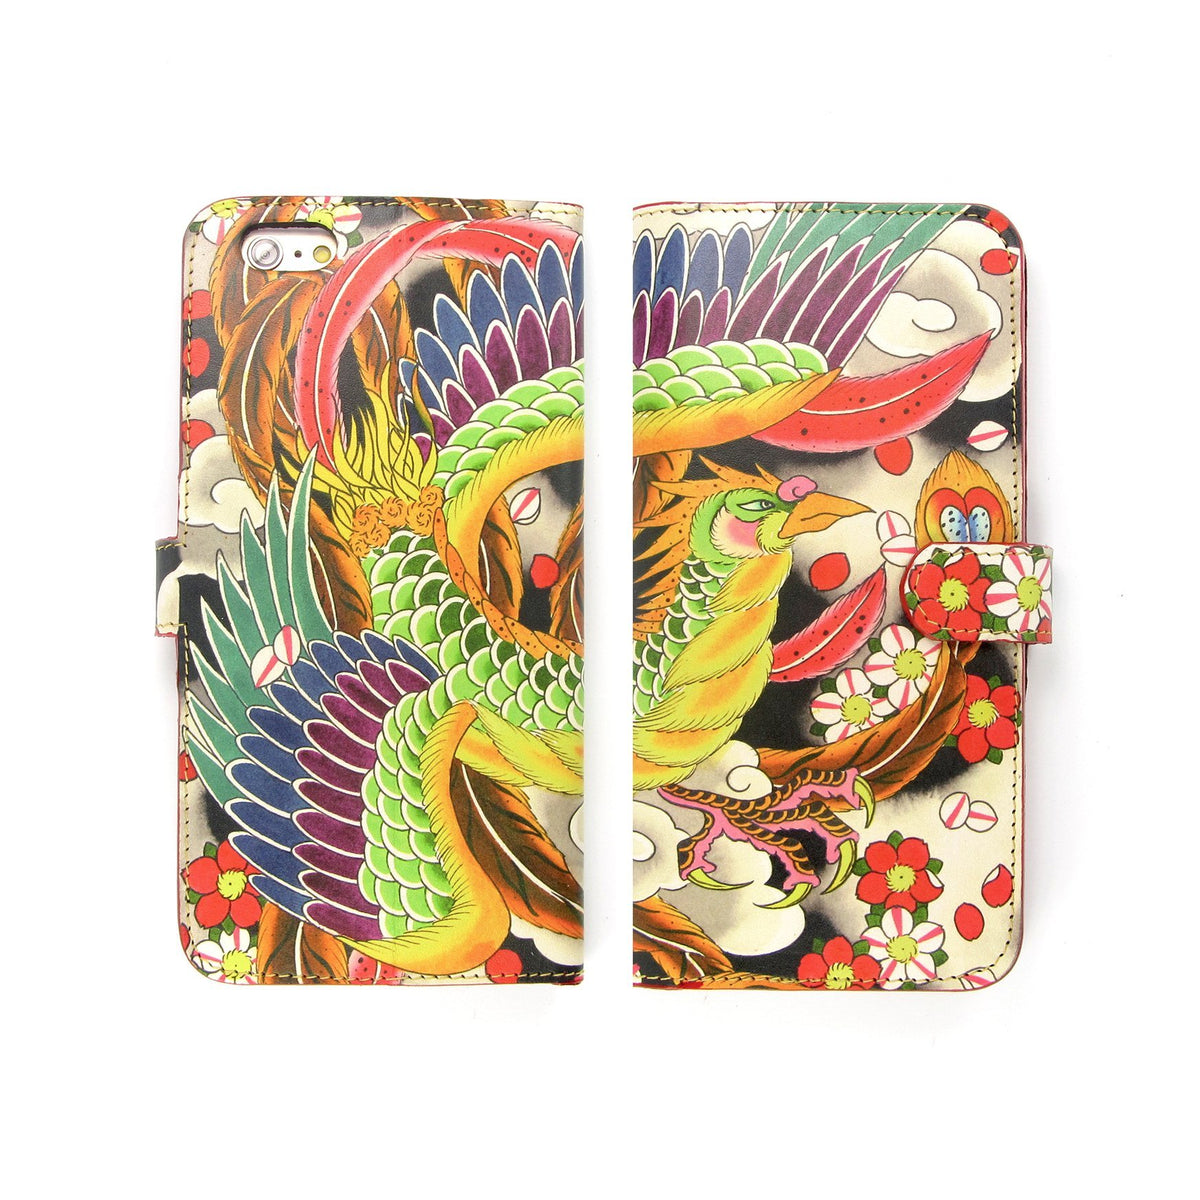 Phone case with card holder - Phoenix Tattoo phone case - Bight fun phone case - Tattoo phone case - Japanese pictured phone case -  iphone 11 pro max flip case